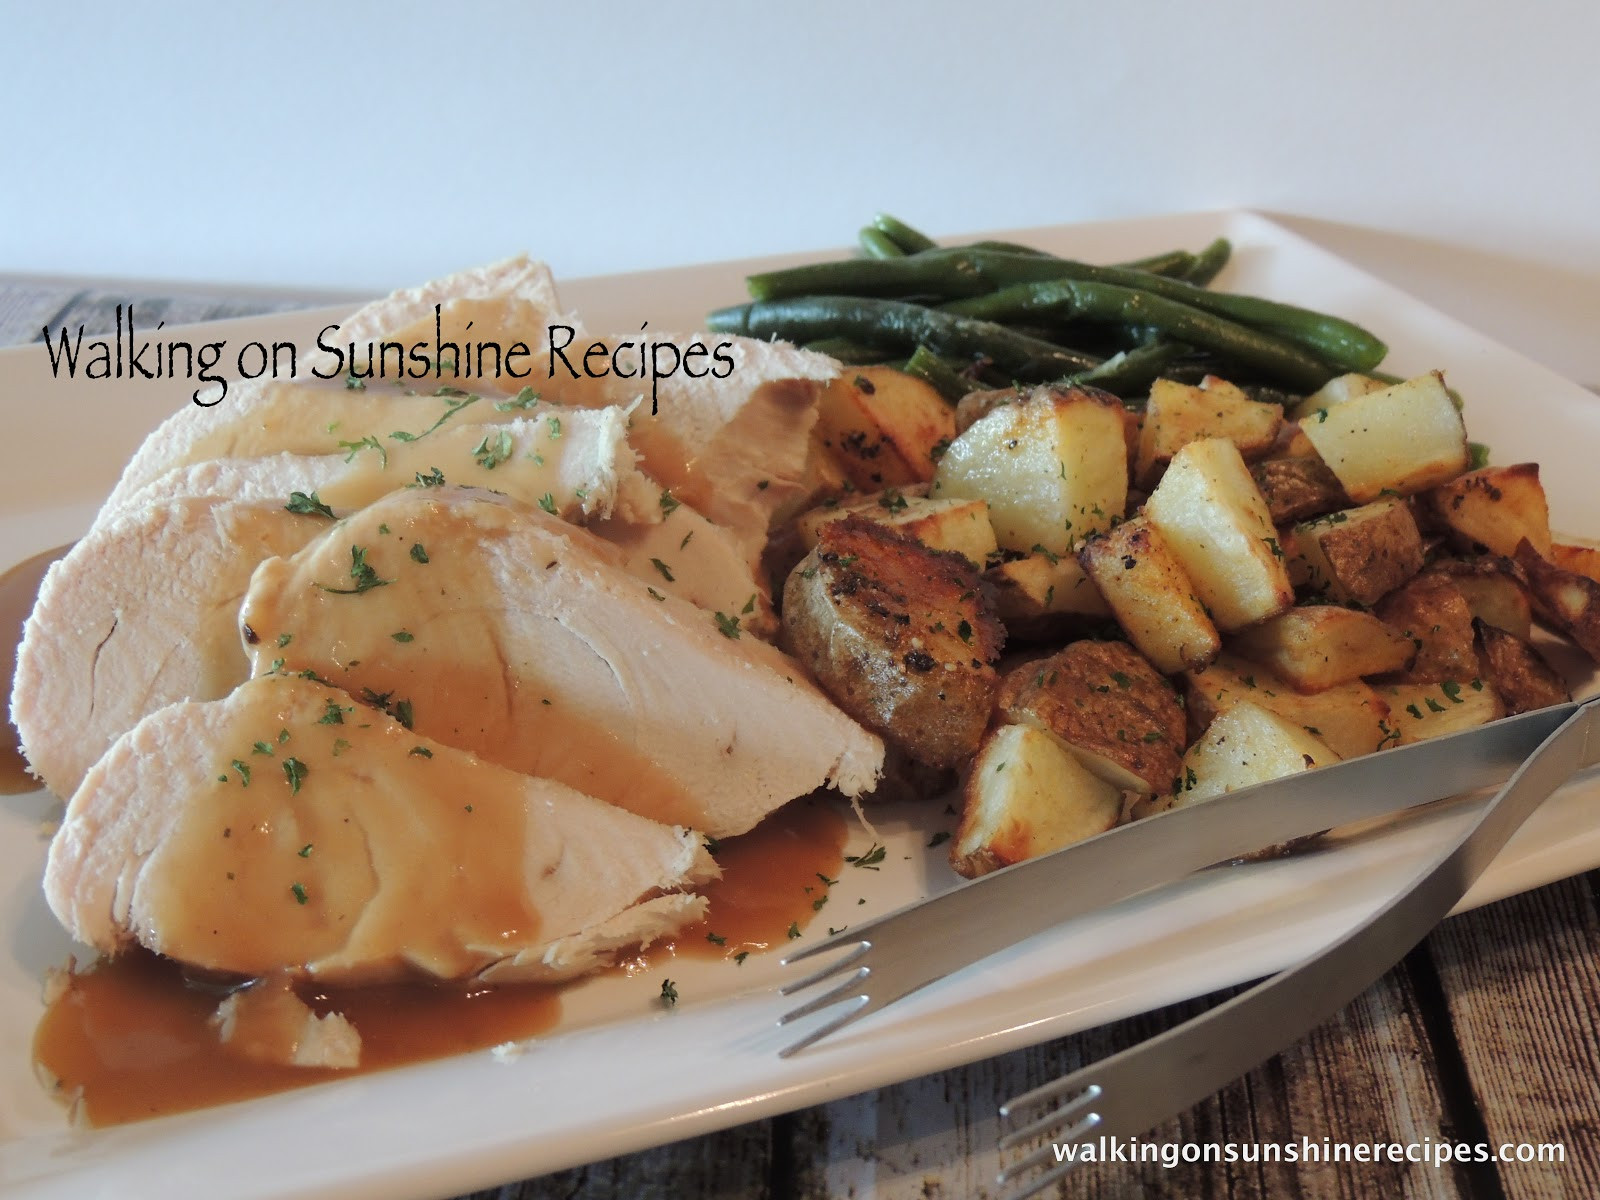 Crock Pot Thanksgiving Turkey  Roast Turkey in the Crock Pot Walking on Sunshine